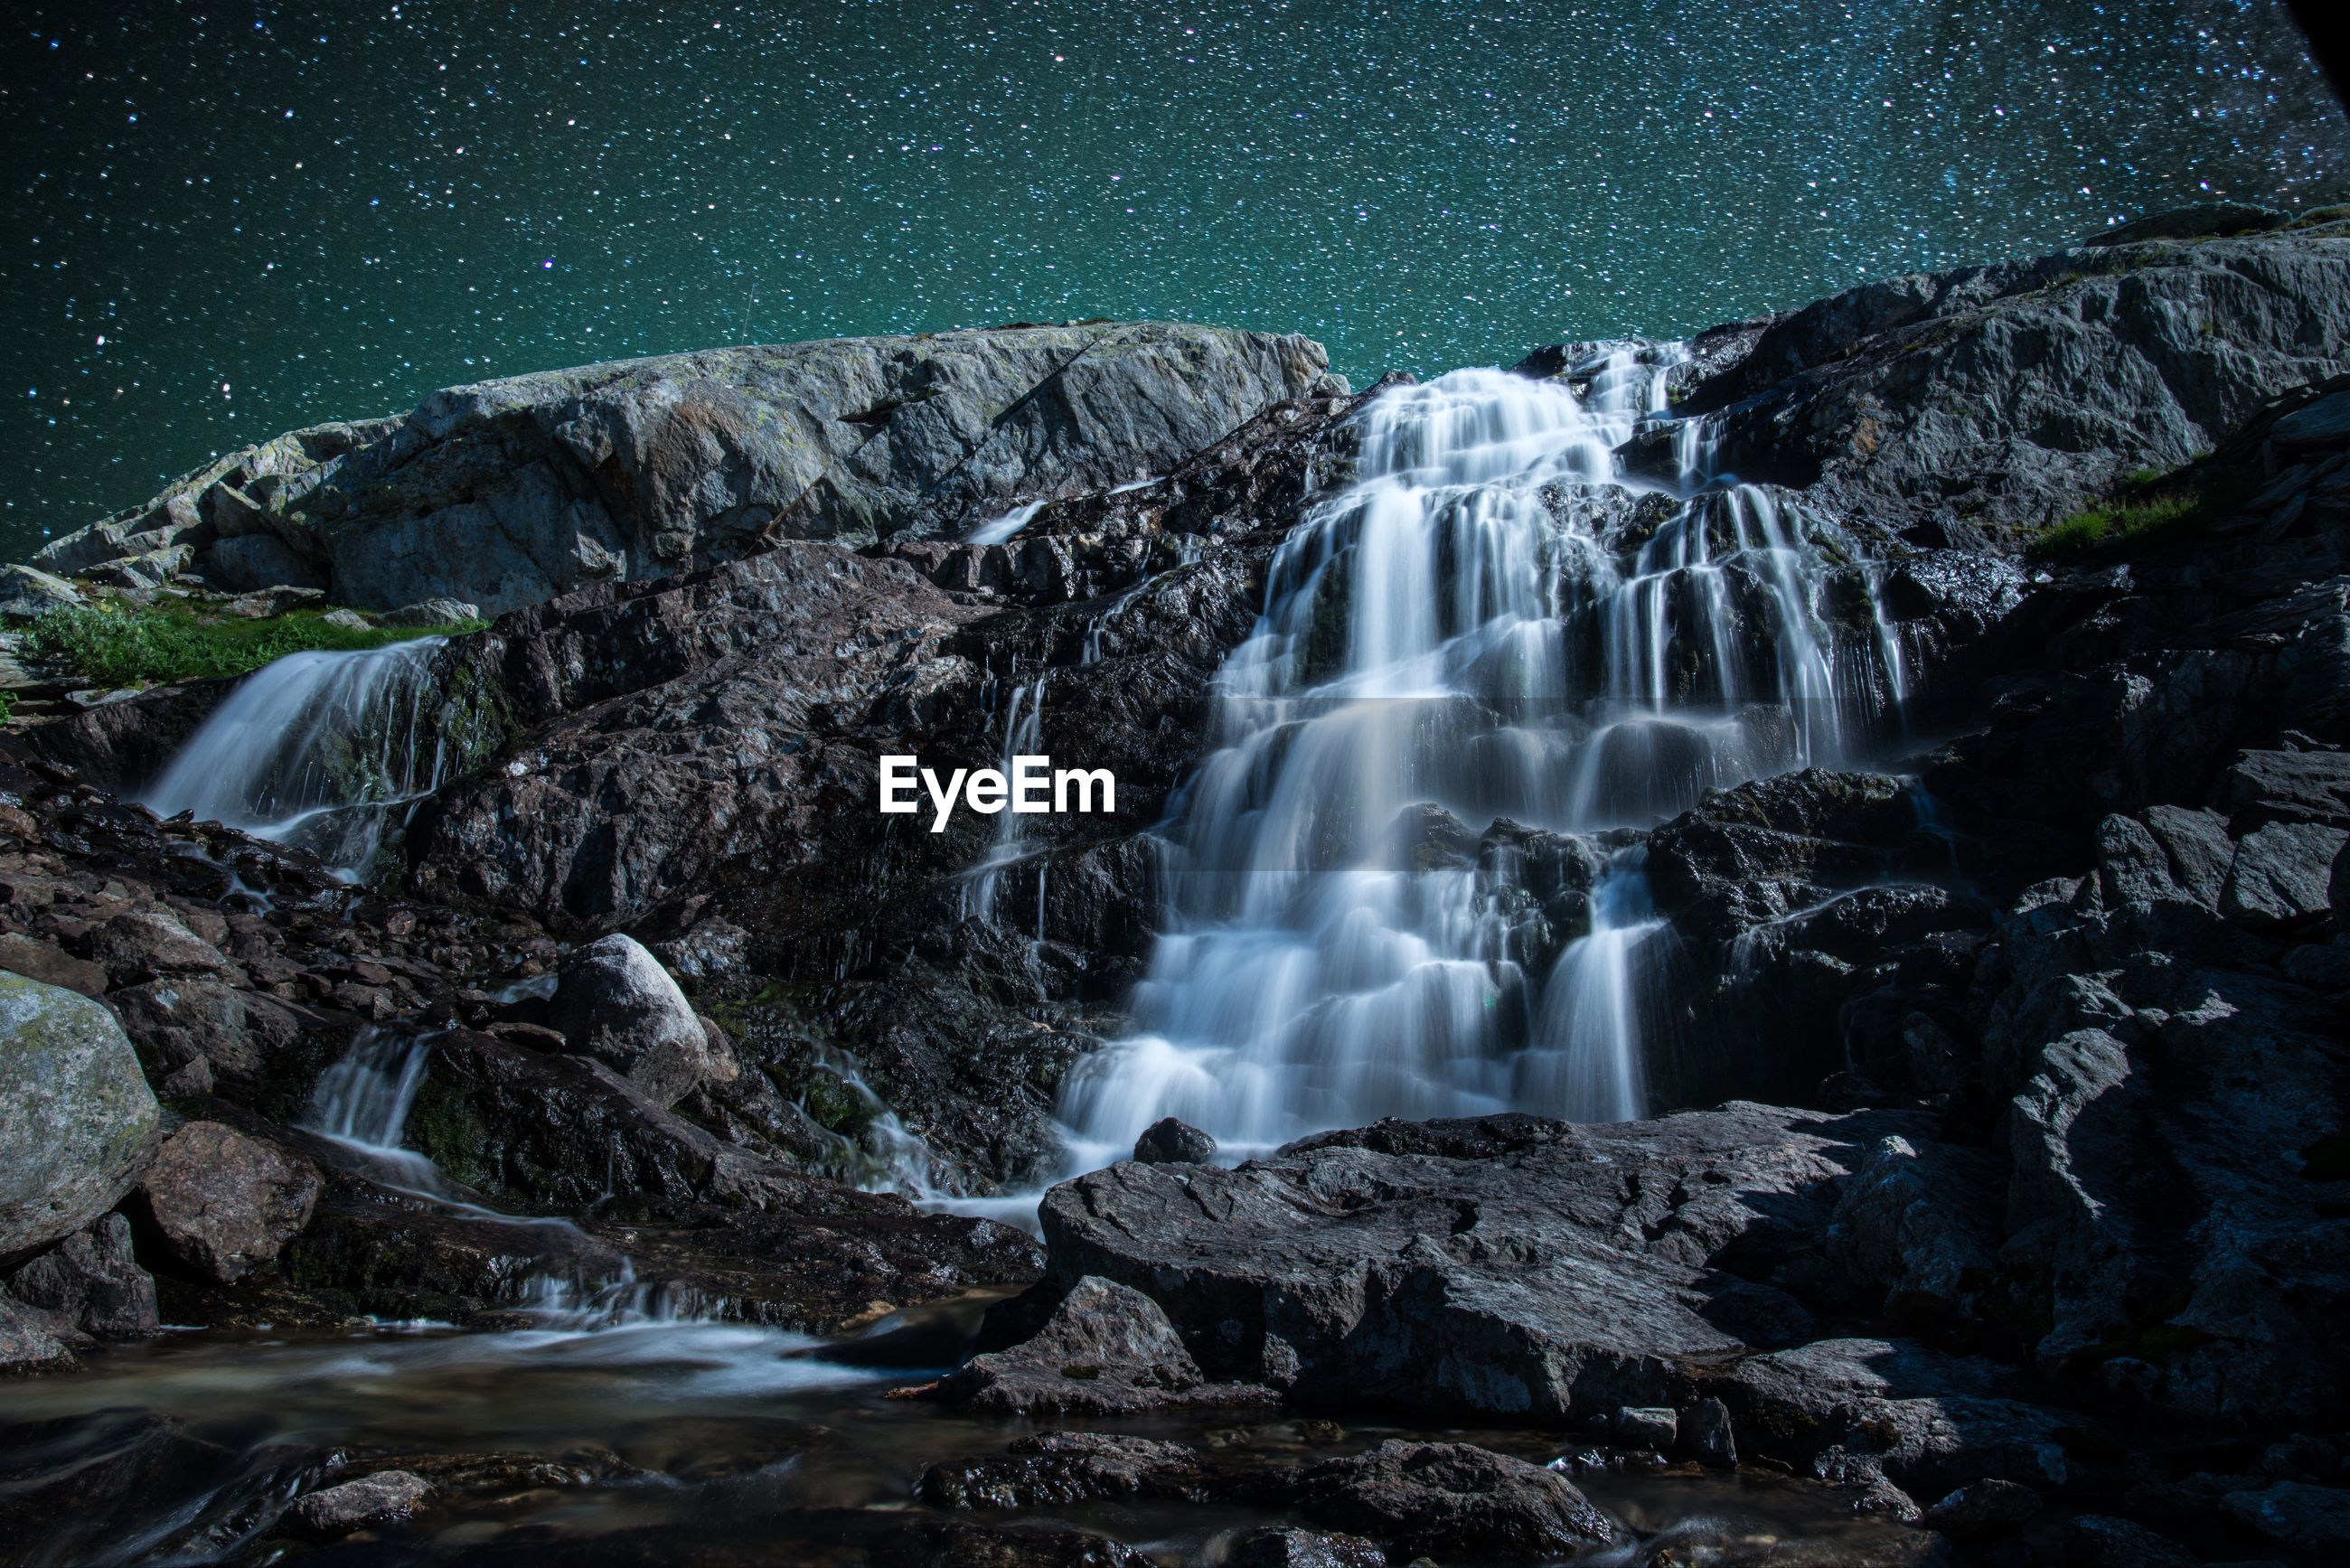 Low angle view of waterfall on rocky mountain against star field sky